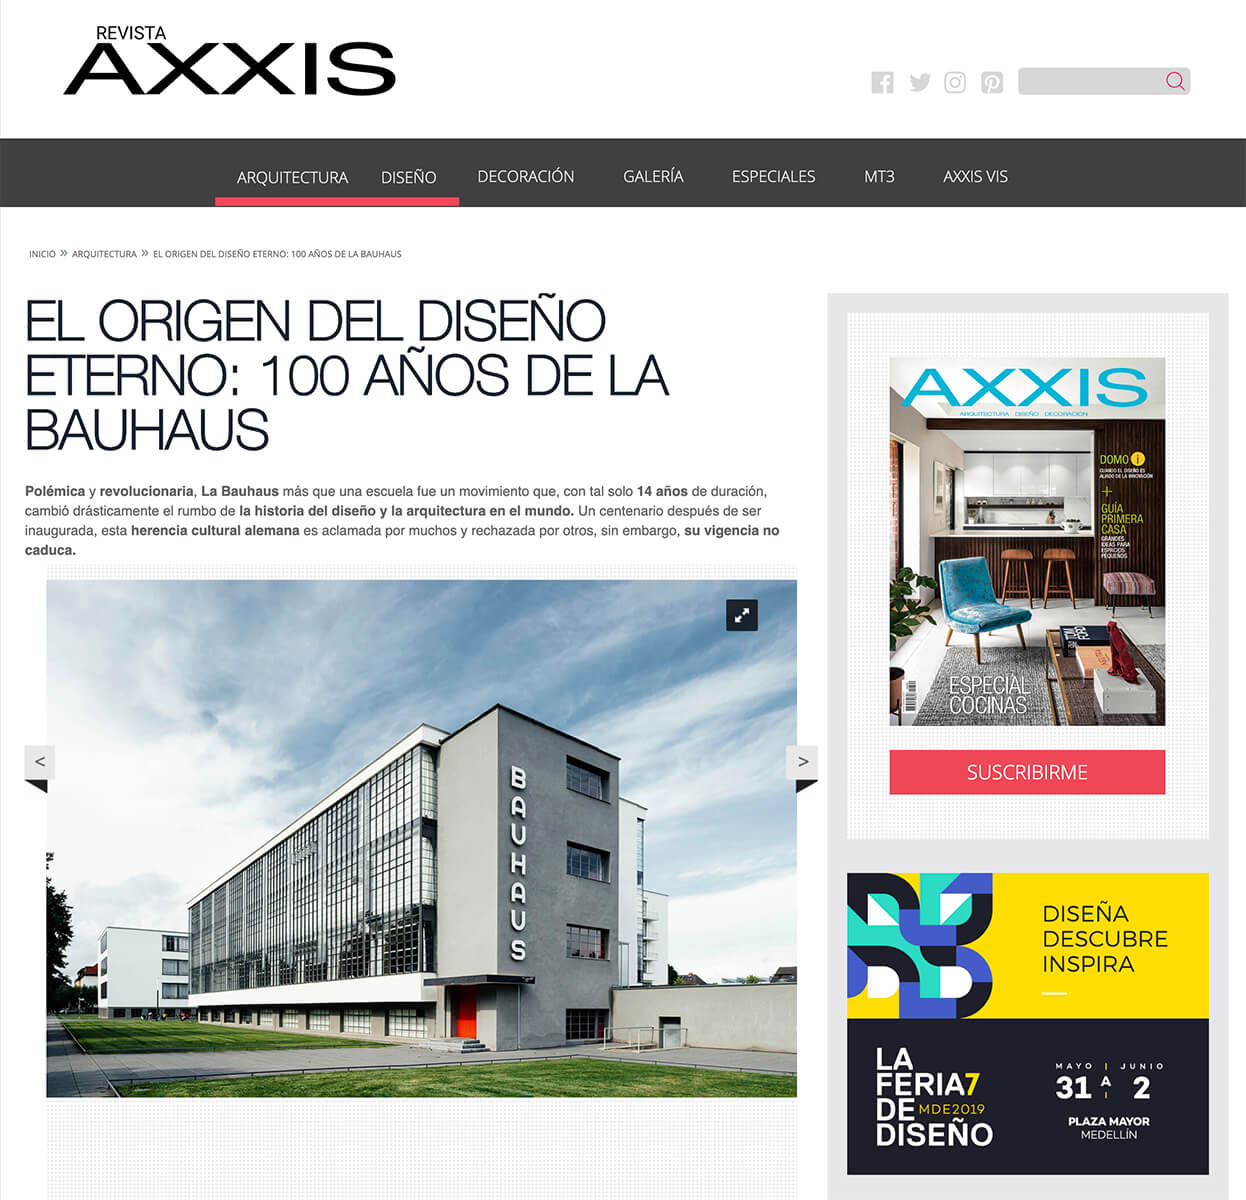 100 years of the Bauhuas - Article for AXXIS magazine